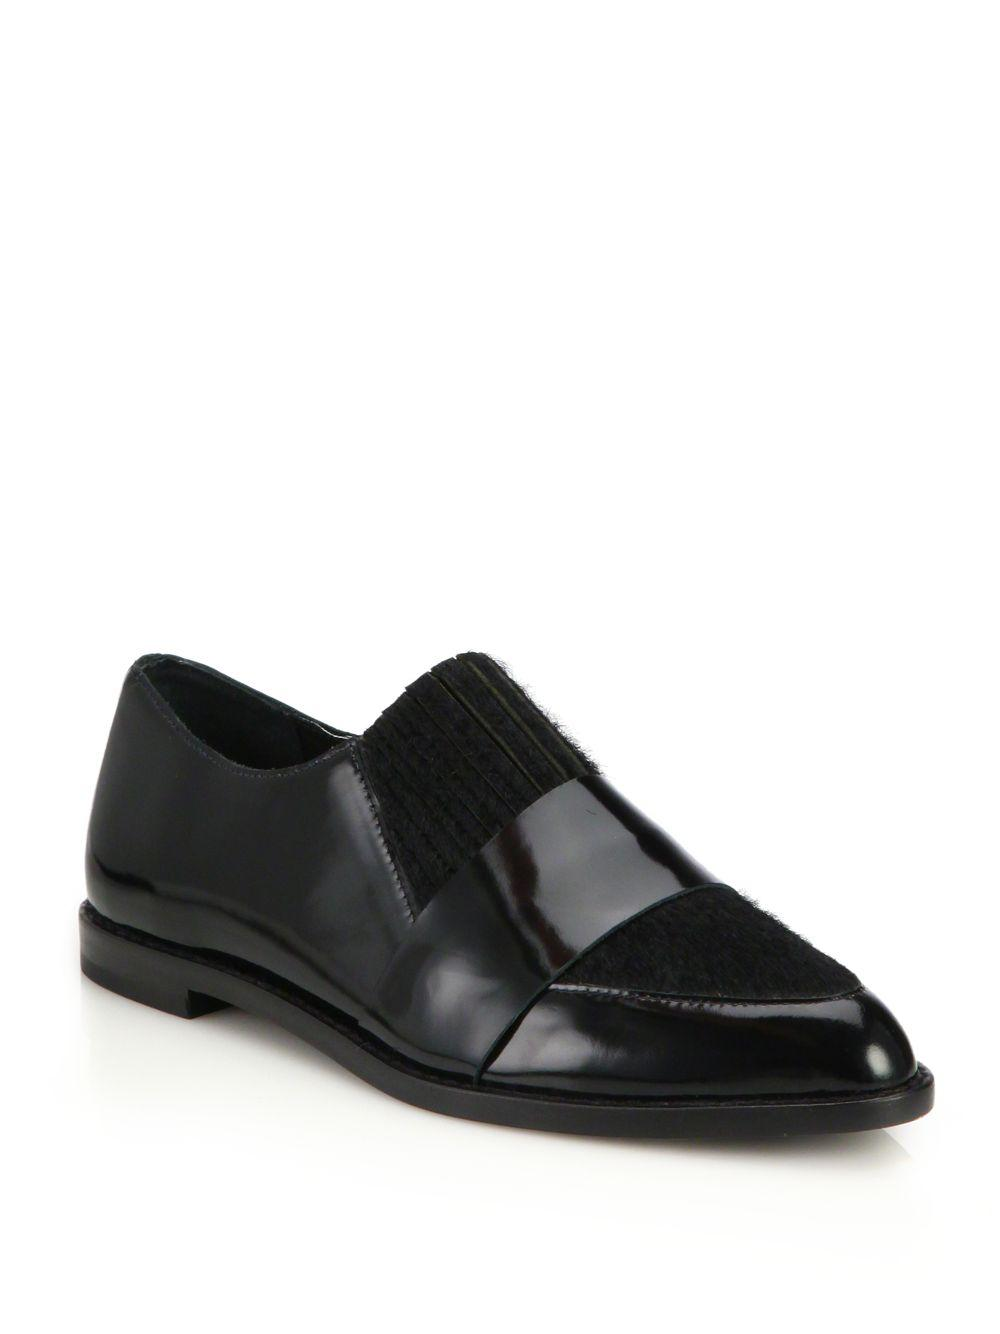 c3fa2422740 Lyst - Loeffler Randall Rosa Patent Leather   Calf Hair Loafers in Black